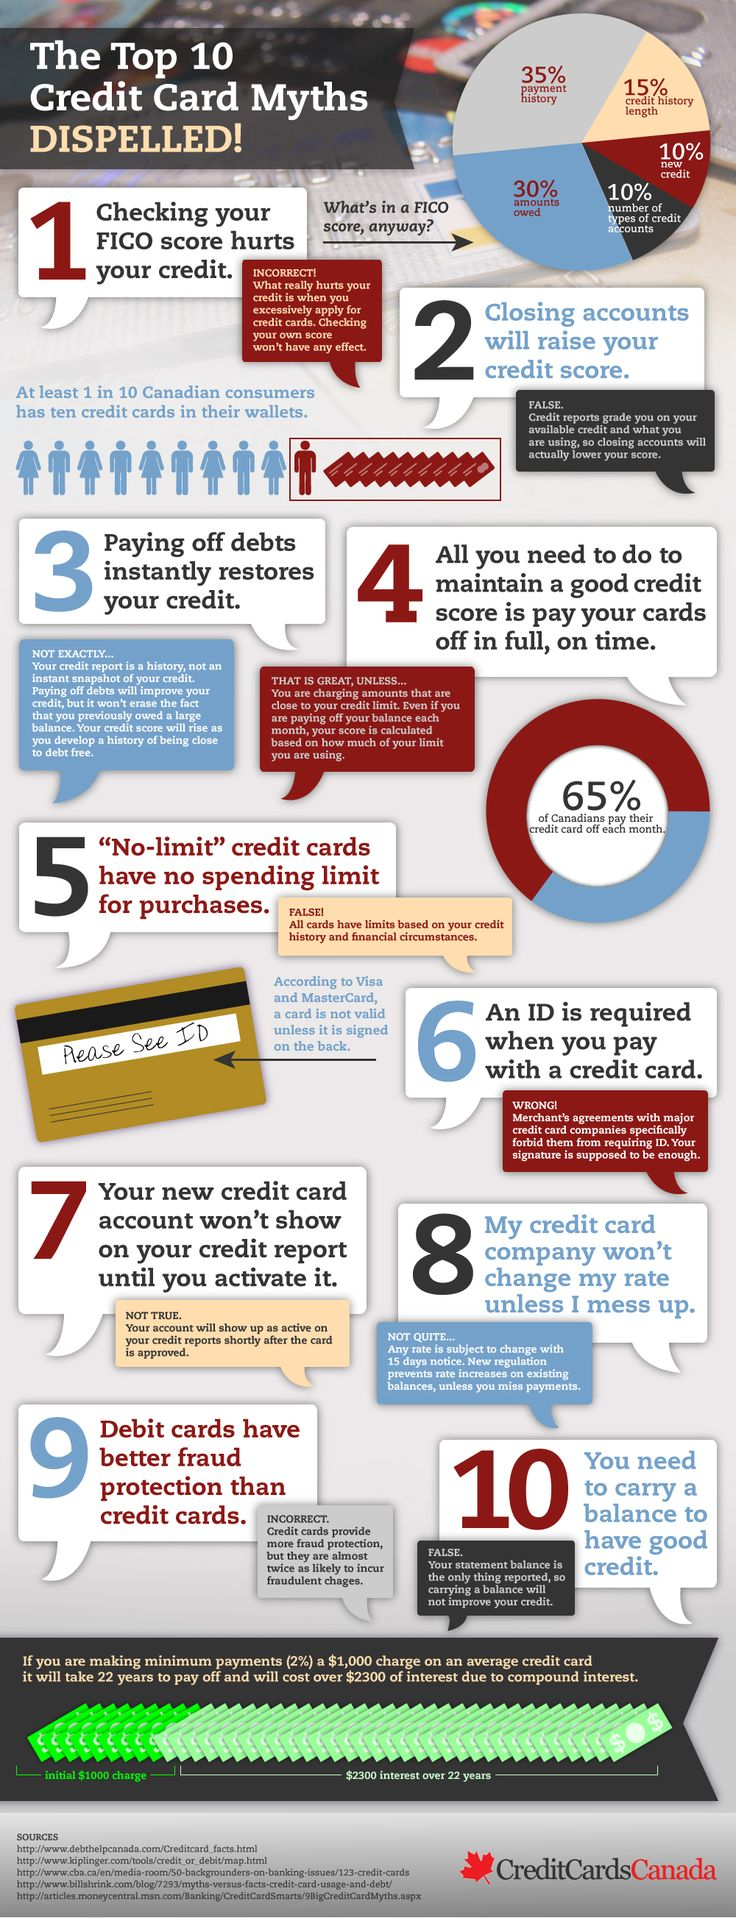 Top 10 Canadian Credit Card Myths Dispelled | Visual.ly